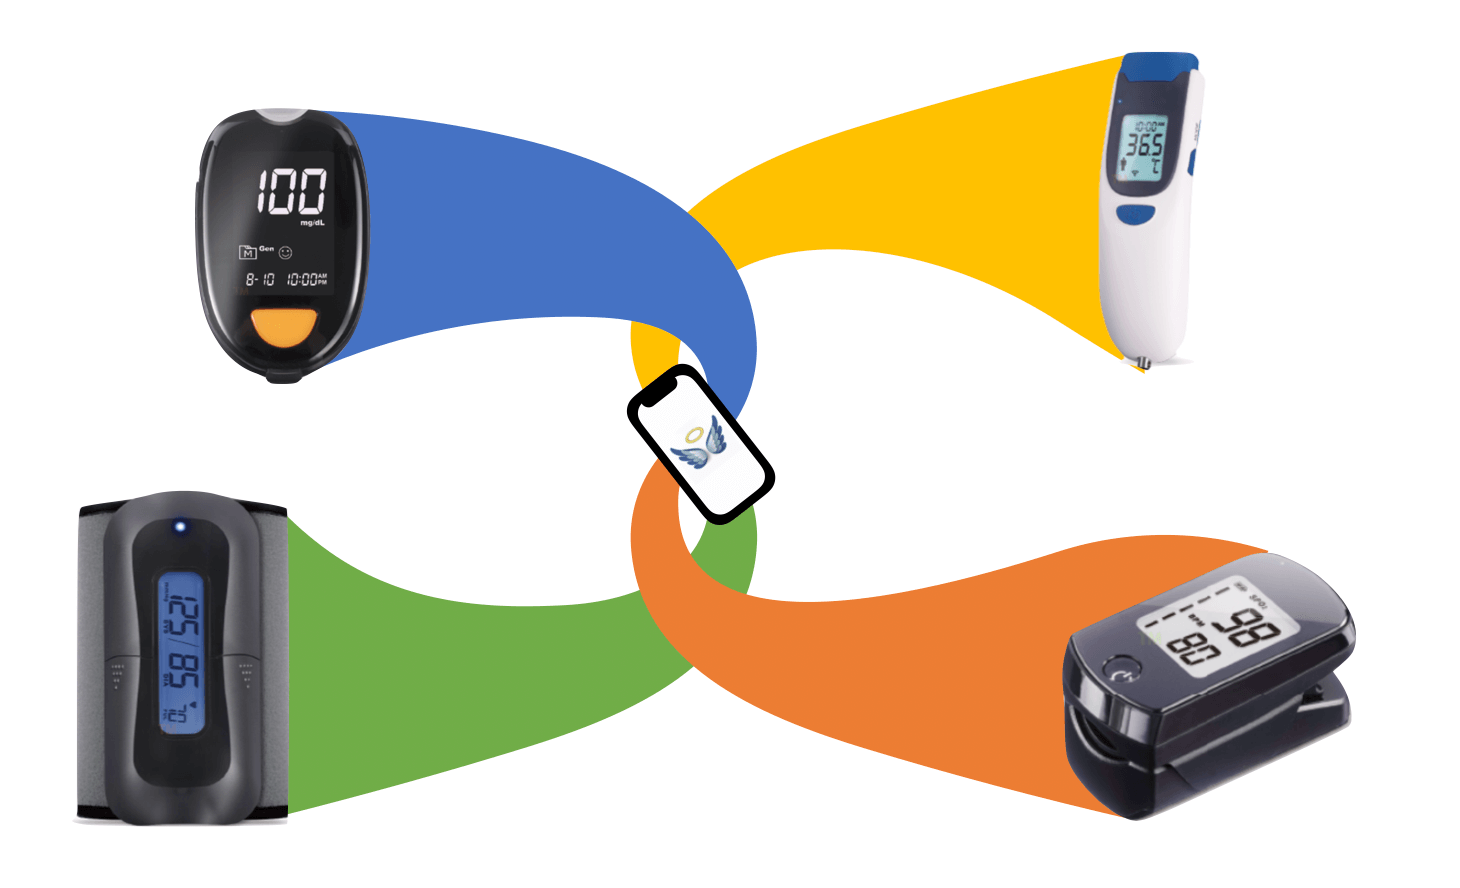 Telehealth connect medical devices GAC